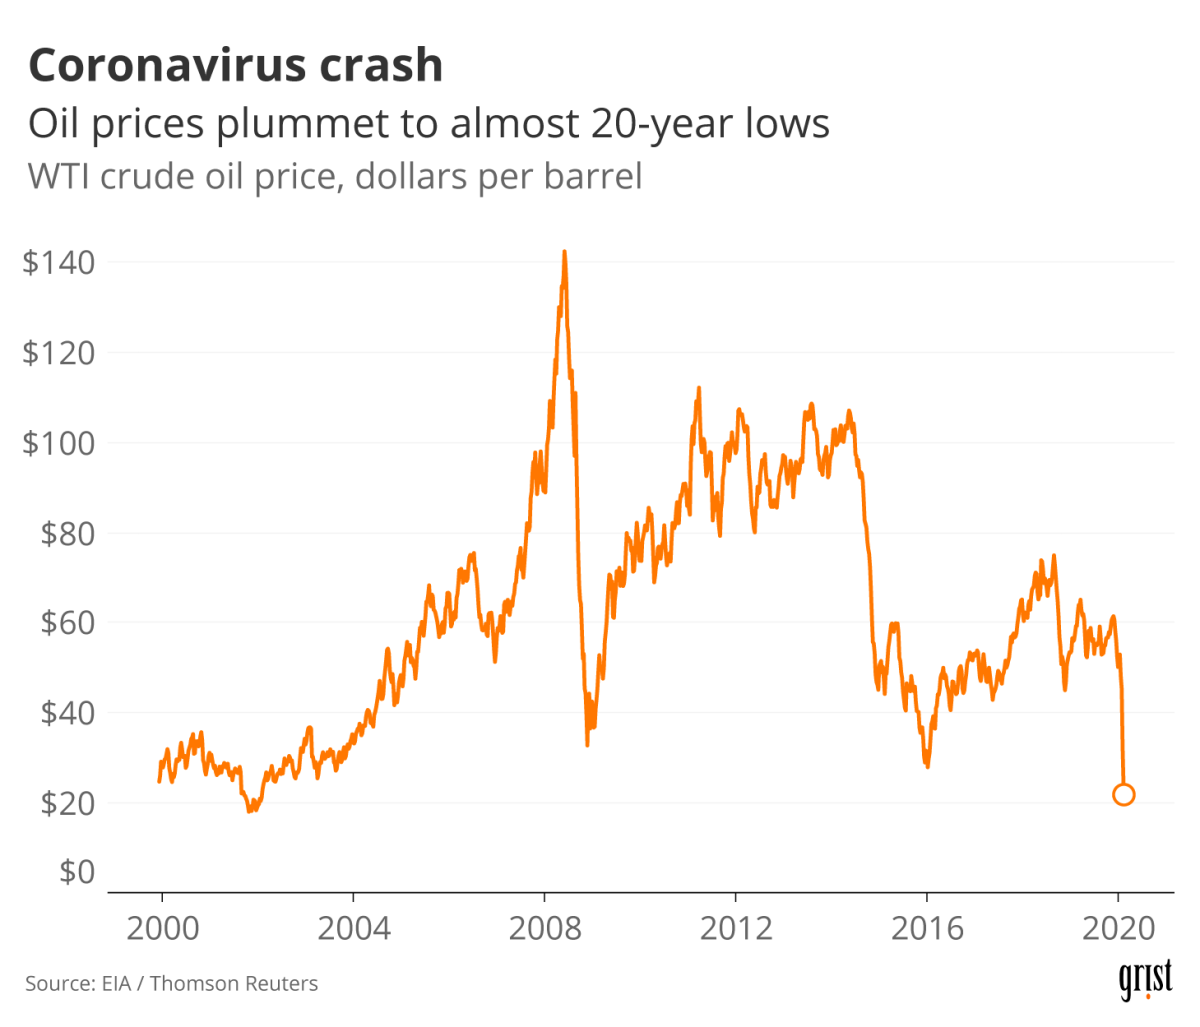 A line chart showing oil prices since 2000 in dollars per barrel. In March 2020, prices hit a near-20-year low.